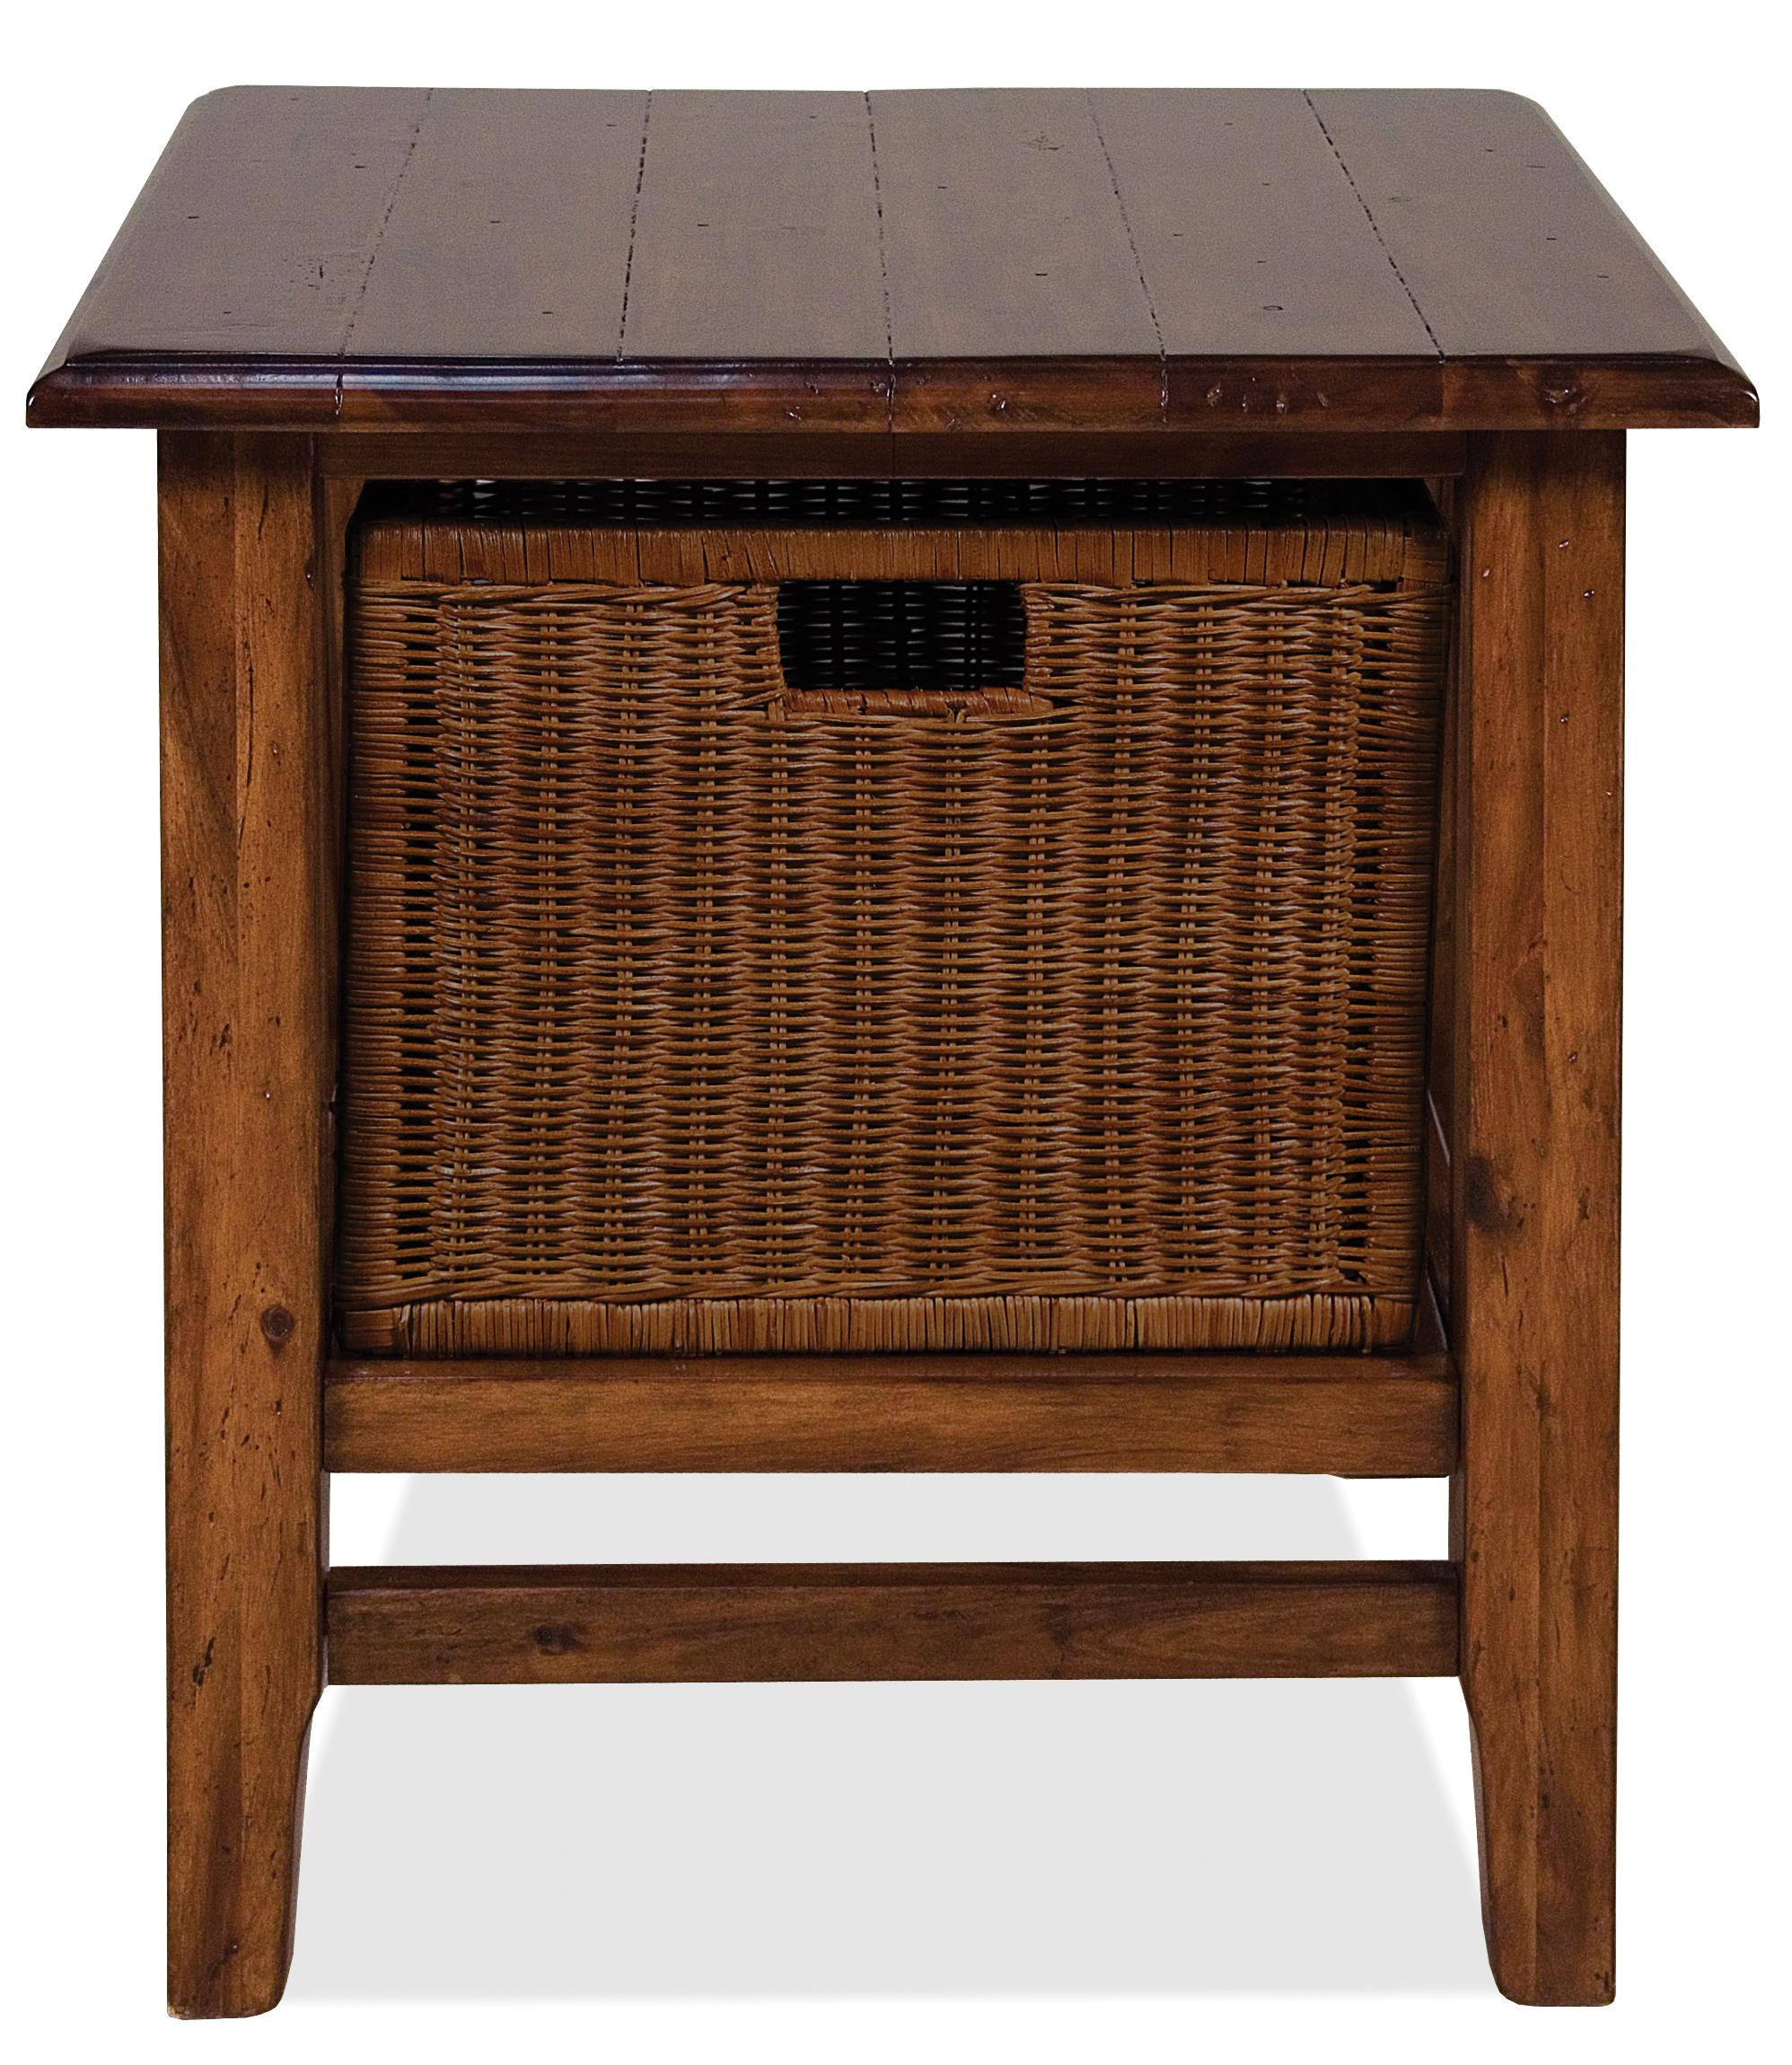 rectangular end table with storage basket oval accent drawers wicker baskets foot patio umbrella ikea lack coffee target acrylic small red armchairs for spaces telephone black